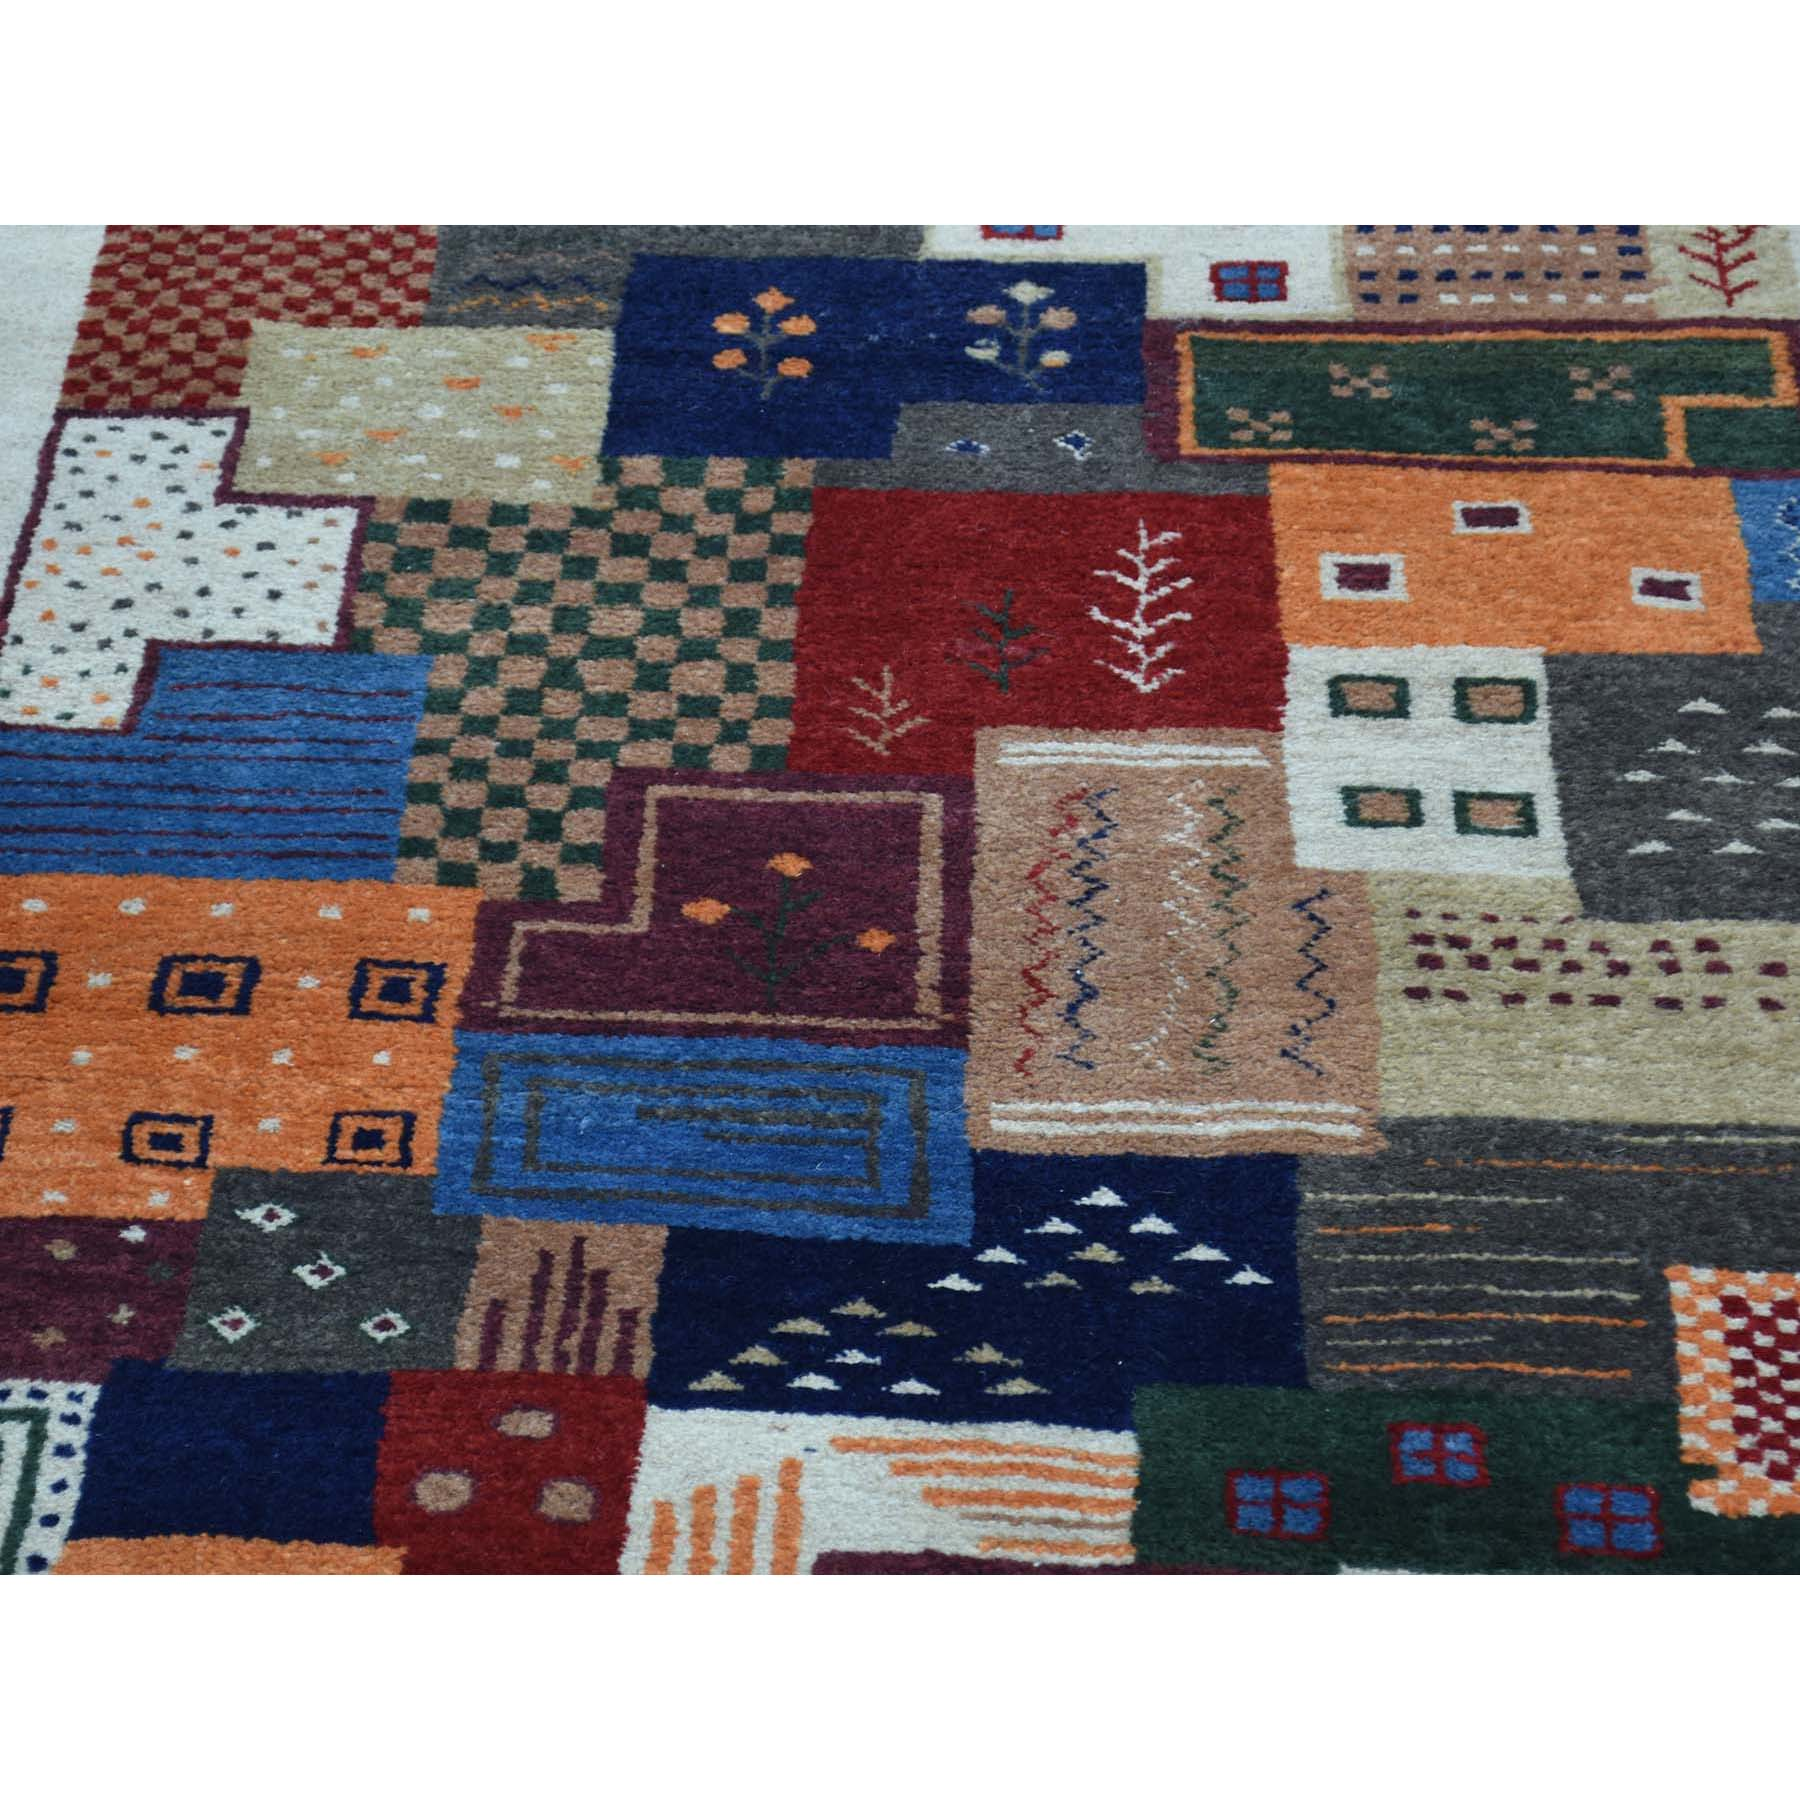 2-x3-1-- Hand-Knotted Persian Wool Lori Buft Gabbeh Patchwork Design Rug